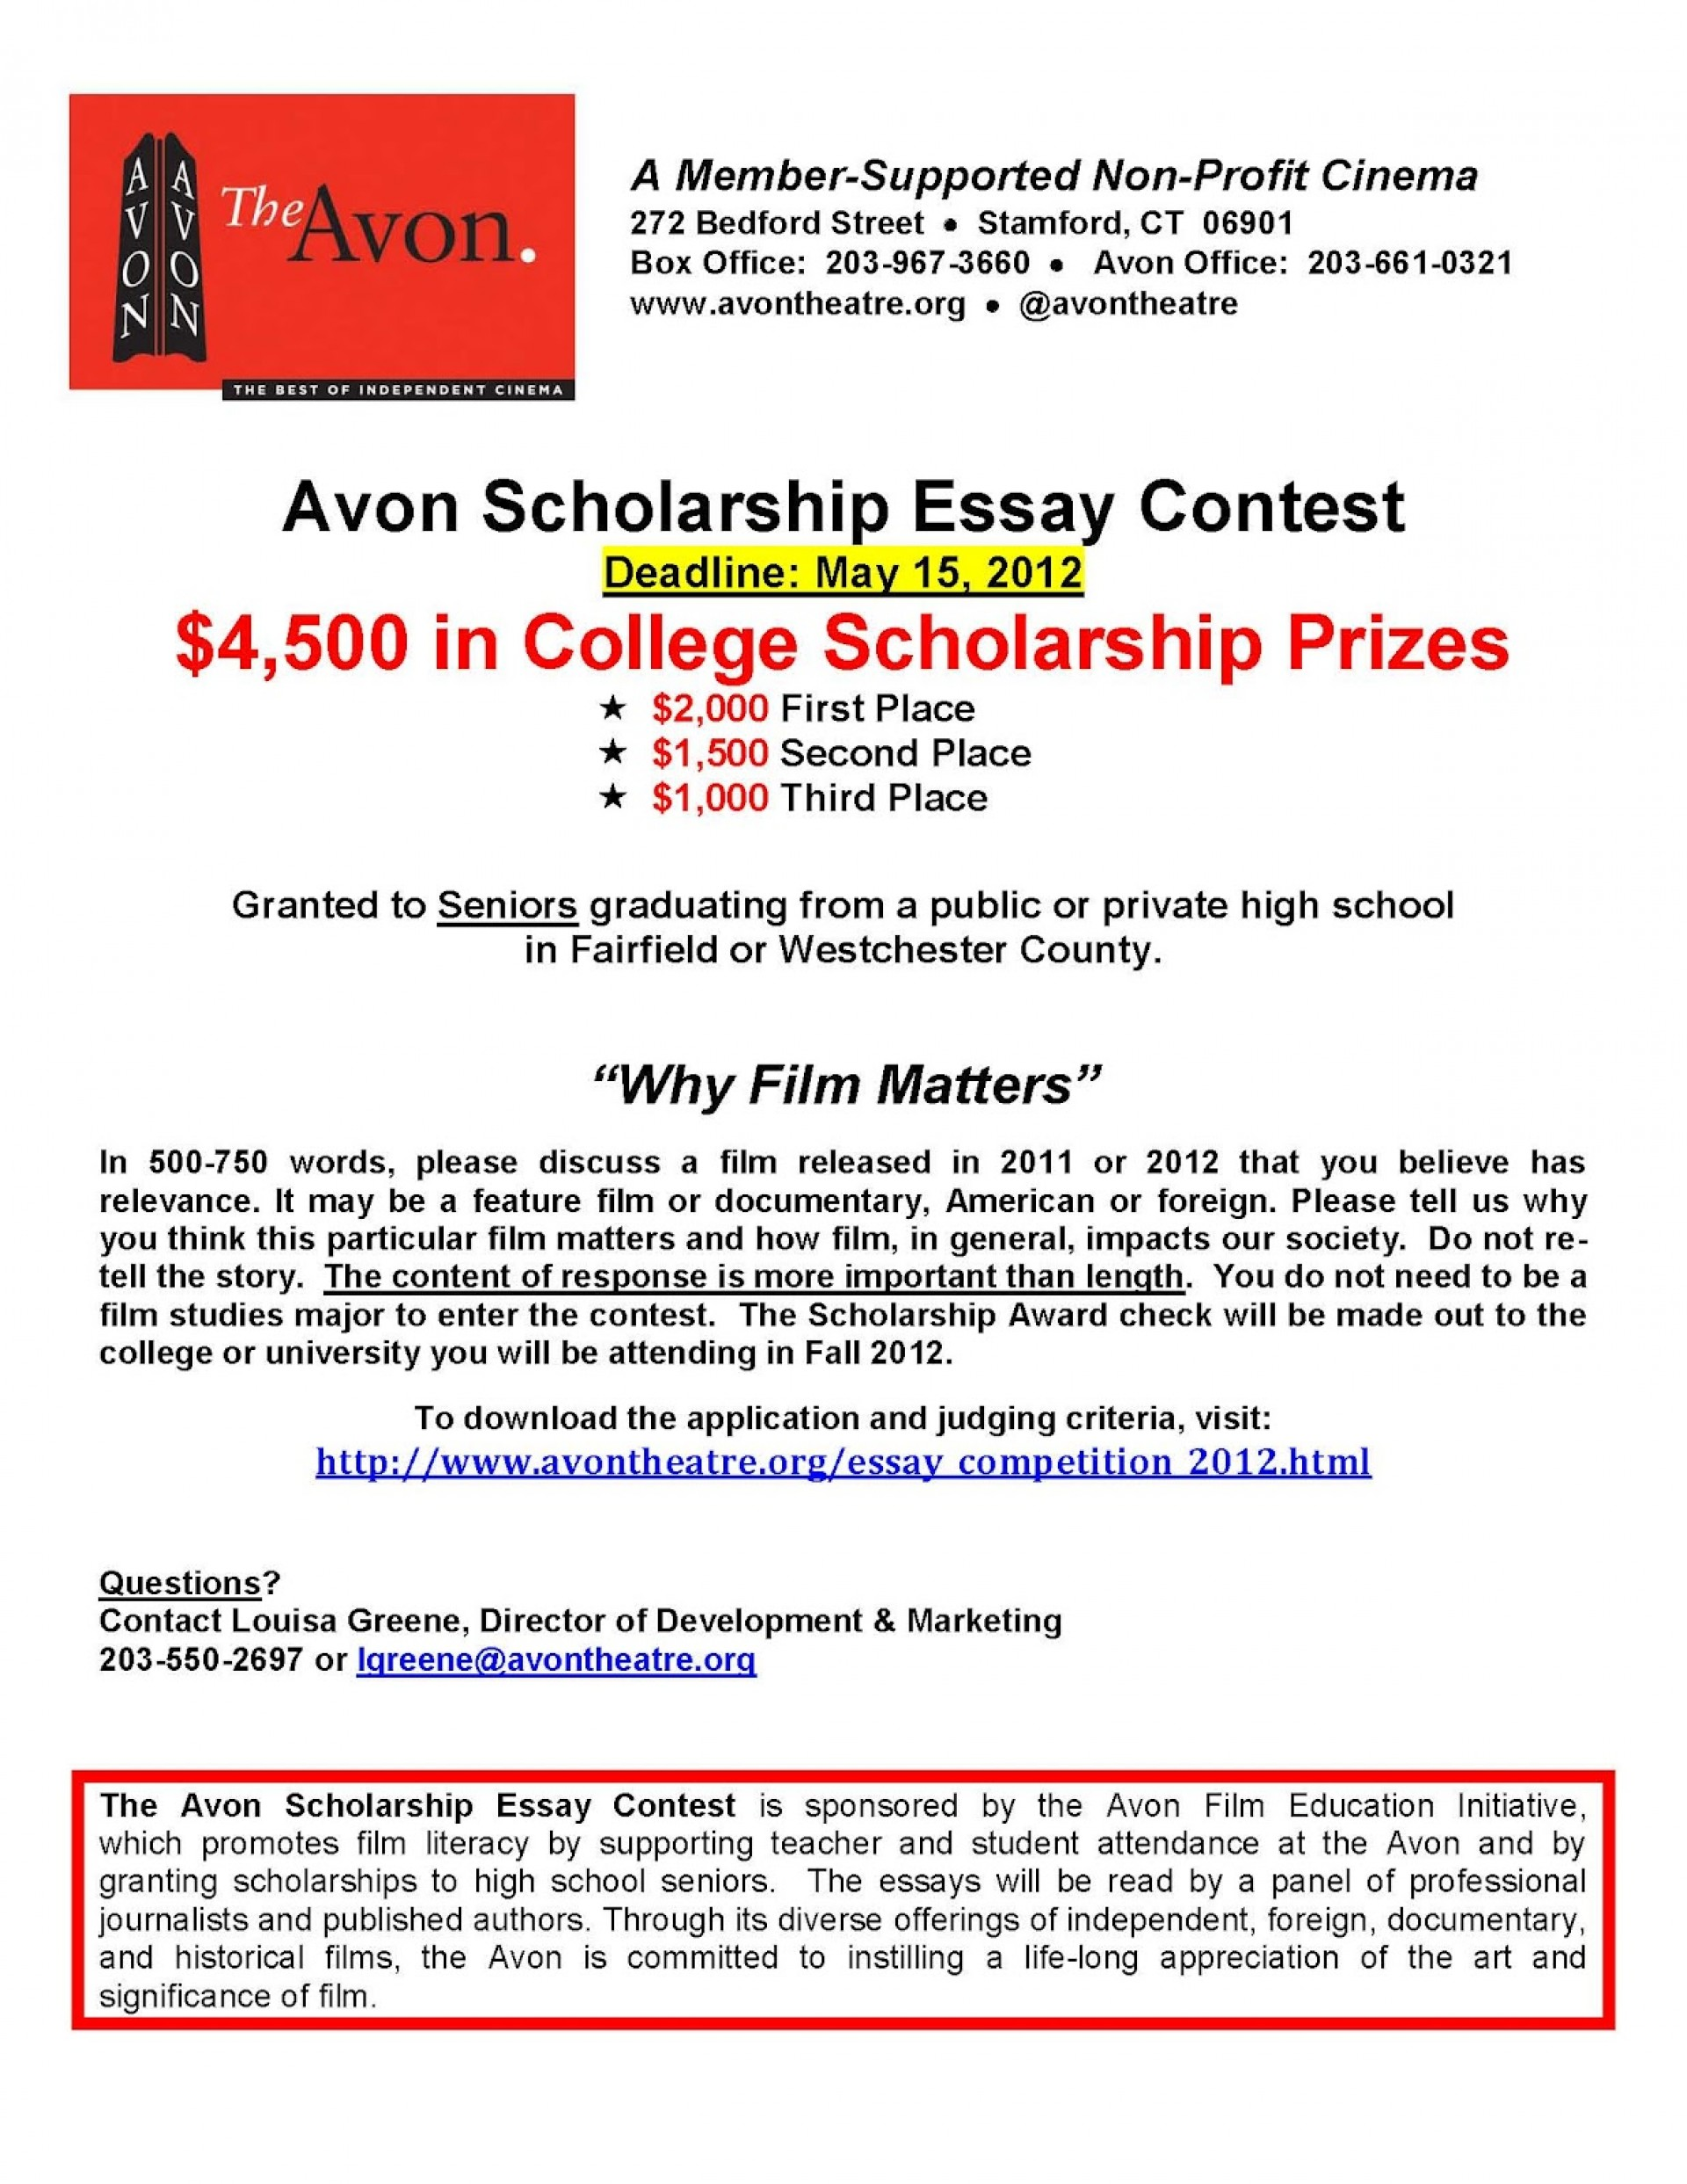 026 No Essay Scholarships For High School Seniors College Scholarship Prowler Free Avonscholarshipessaycontest2012 In Texas California Class Of Rare 2018 Short 1920